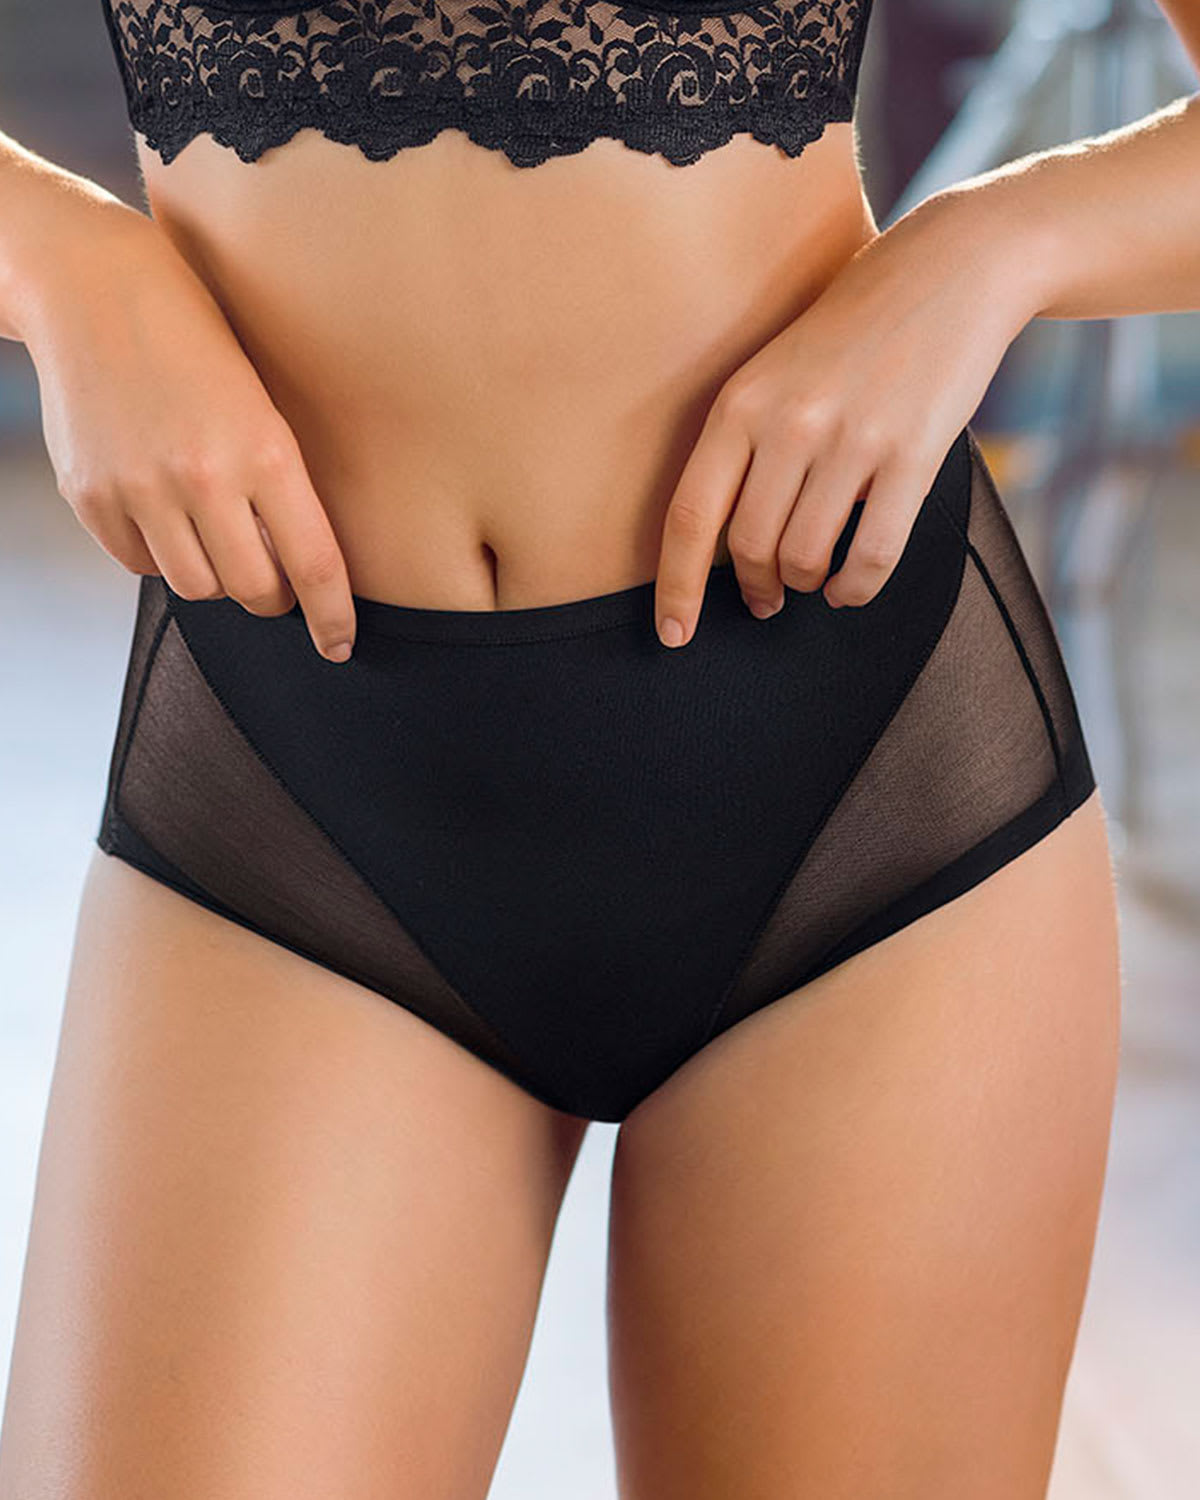 550bea7df0b9 Truly Undetectable Comfy Panty Shaper | Leonisa